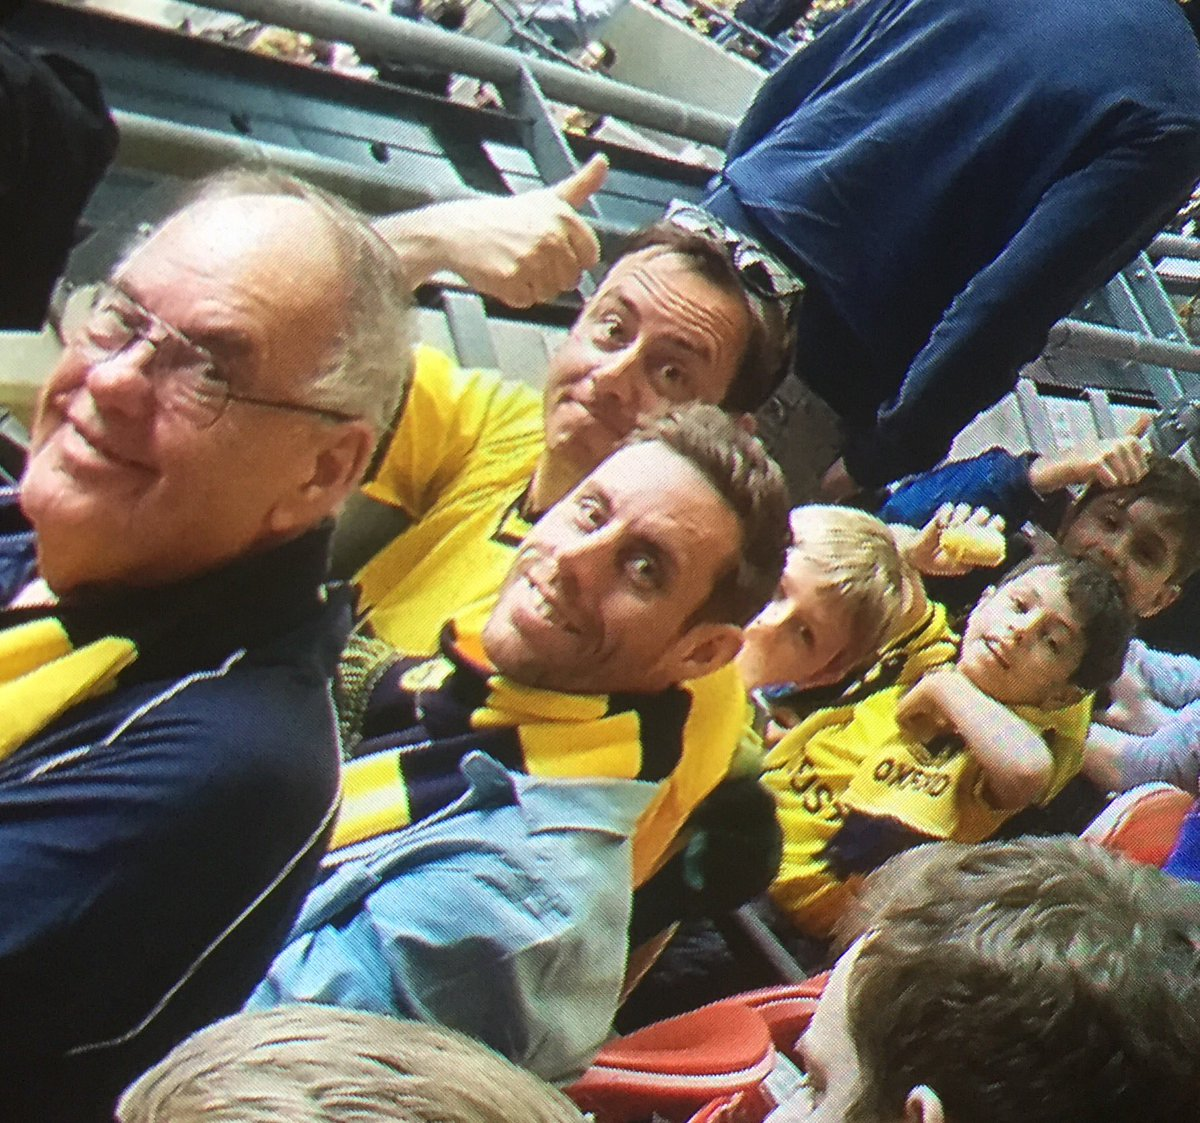 There's 1 empty seat at @OUFCOfficial v #stfc.Our dad/grandad and season ticket holder lost his battle today #oufc https://t.co/4VOxu4BiOH